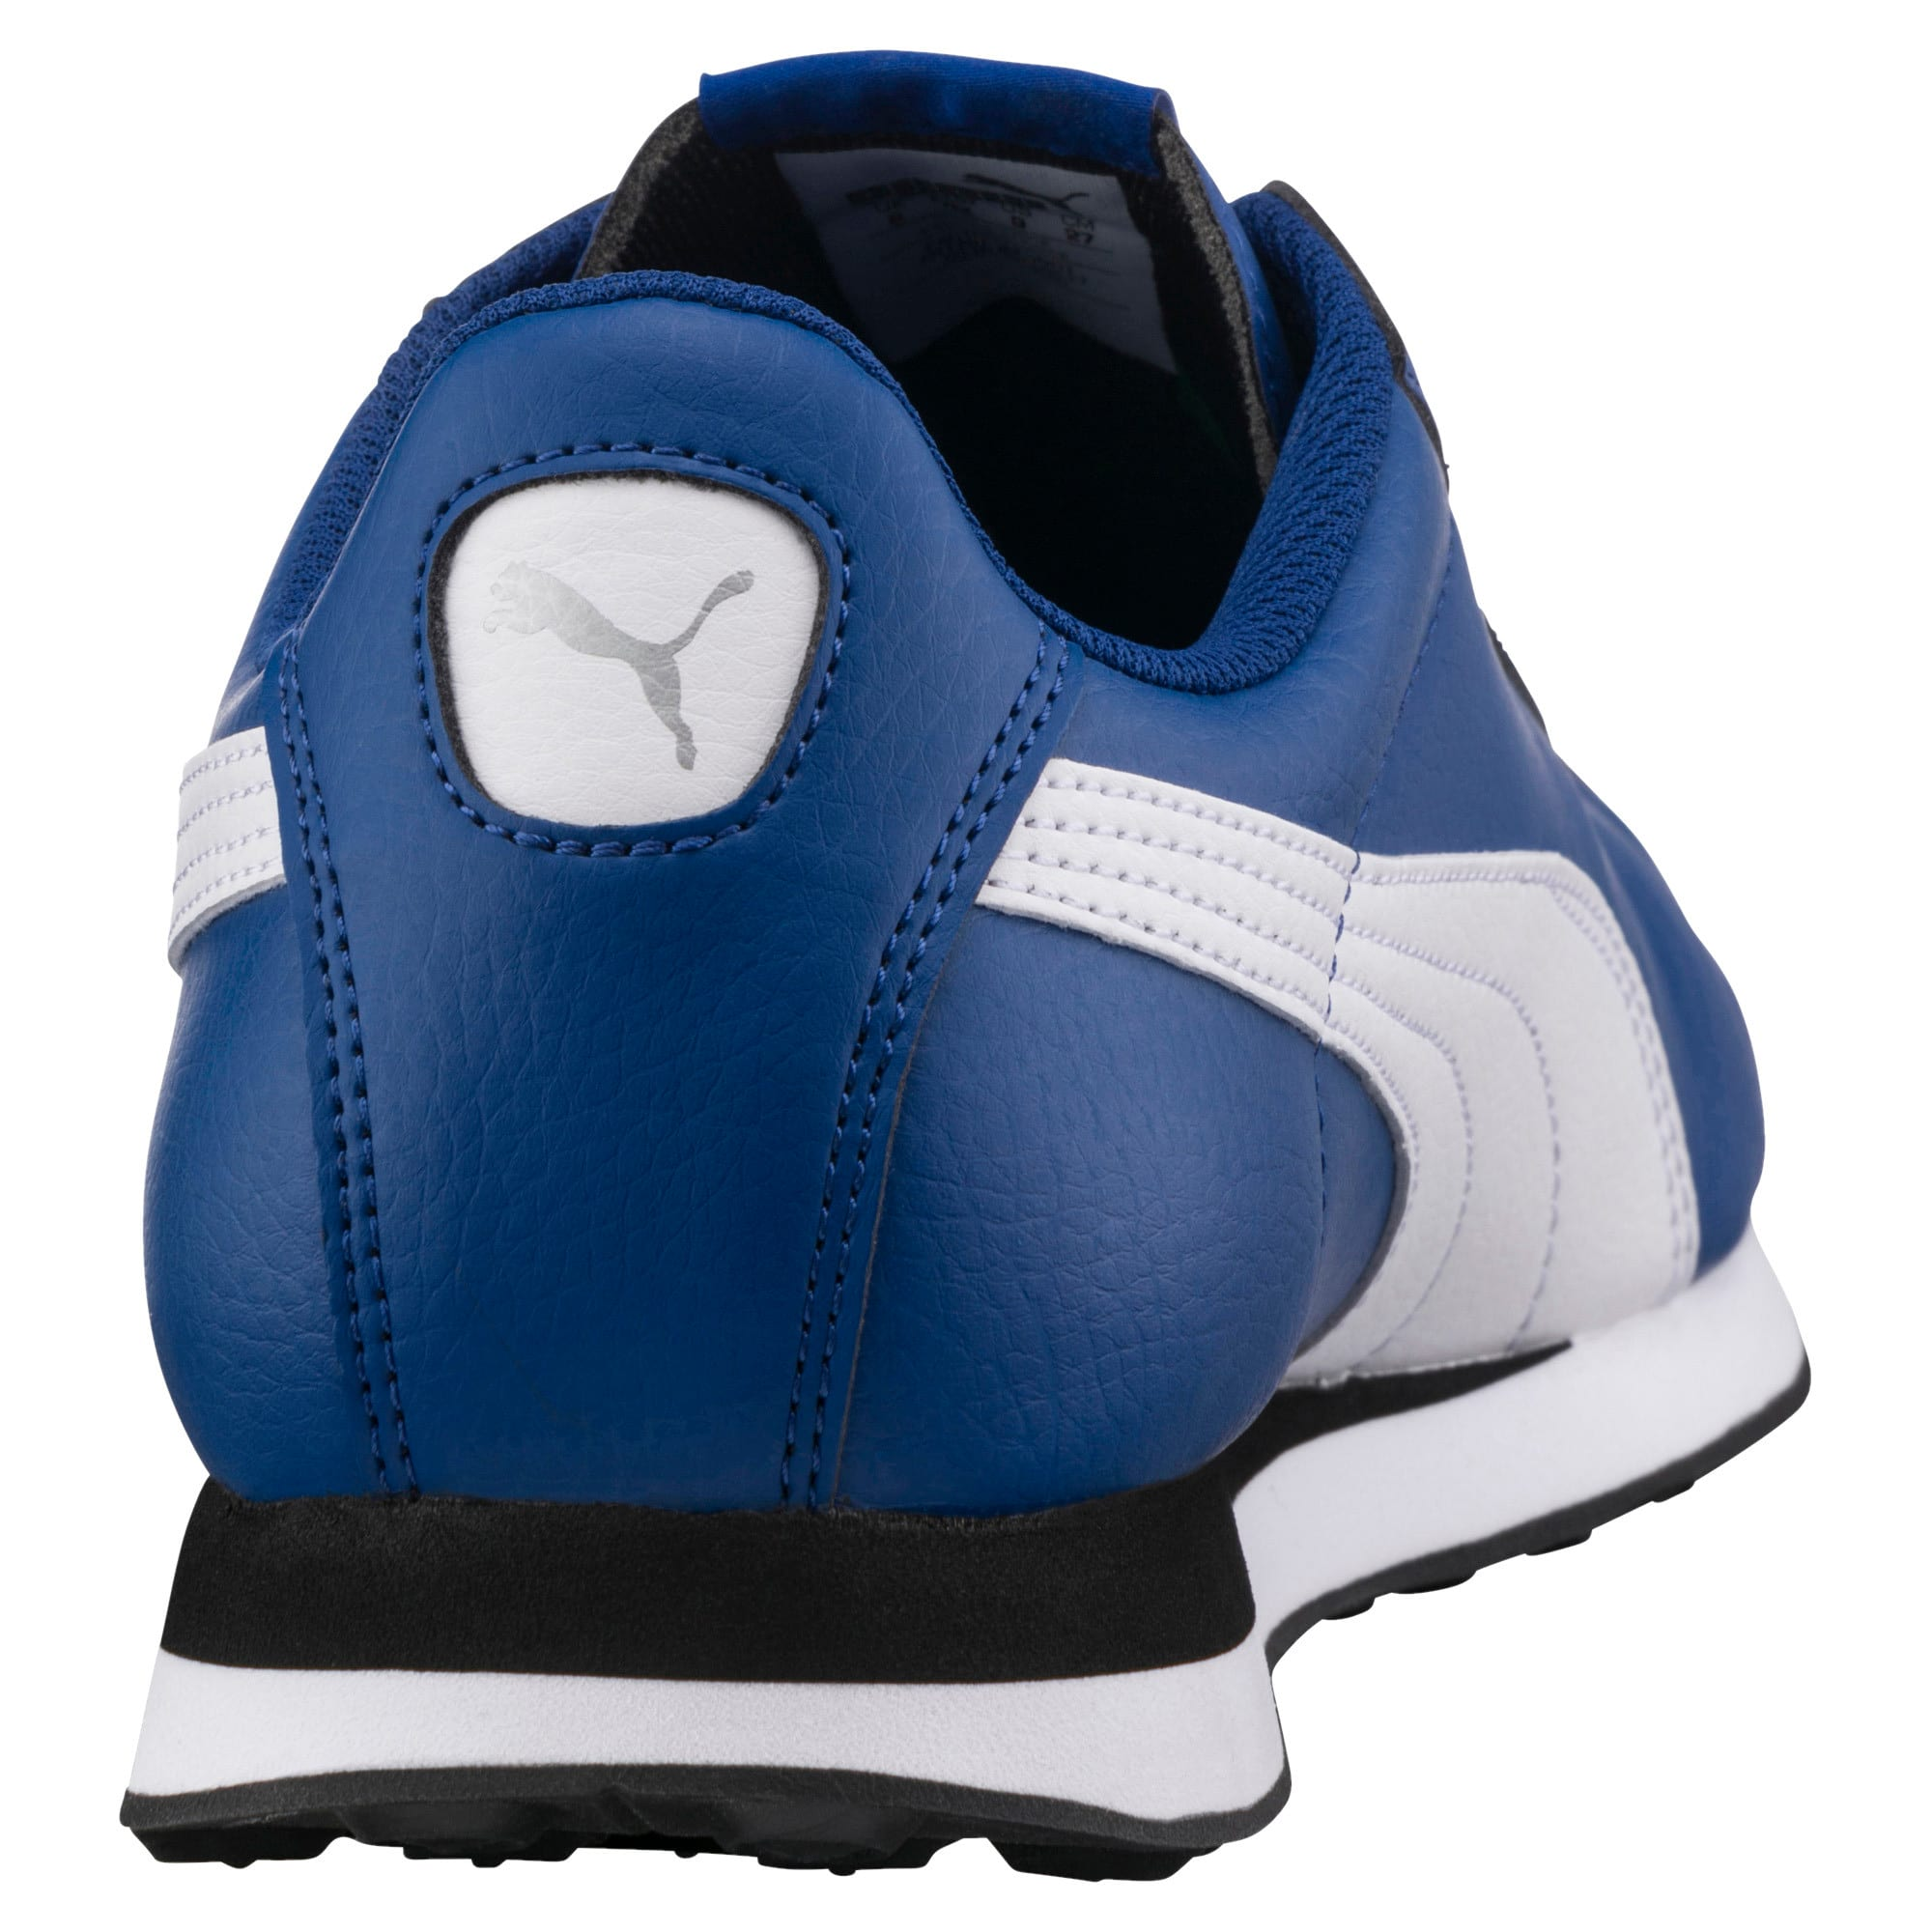 Thumbnail 3 of Turin Trainers, TRUE BLUE-Puma White, medium-IND